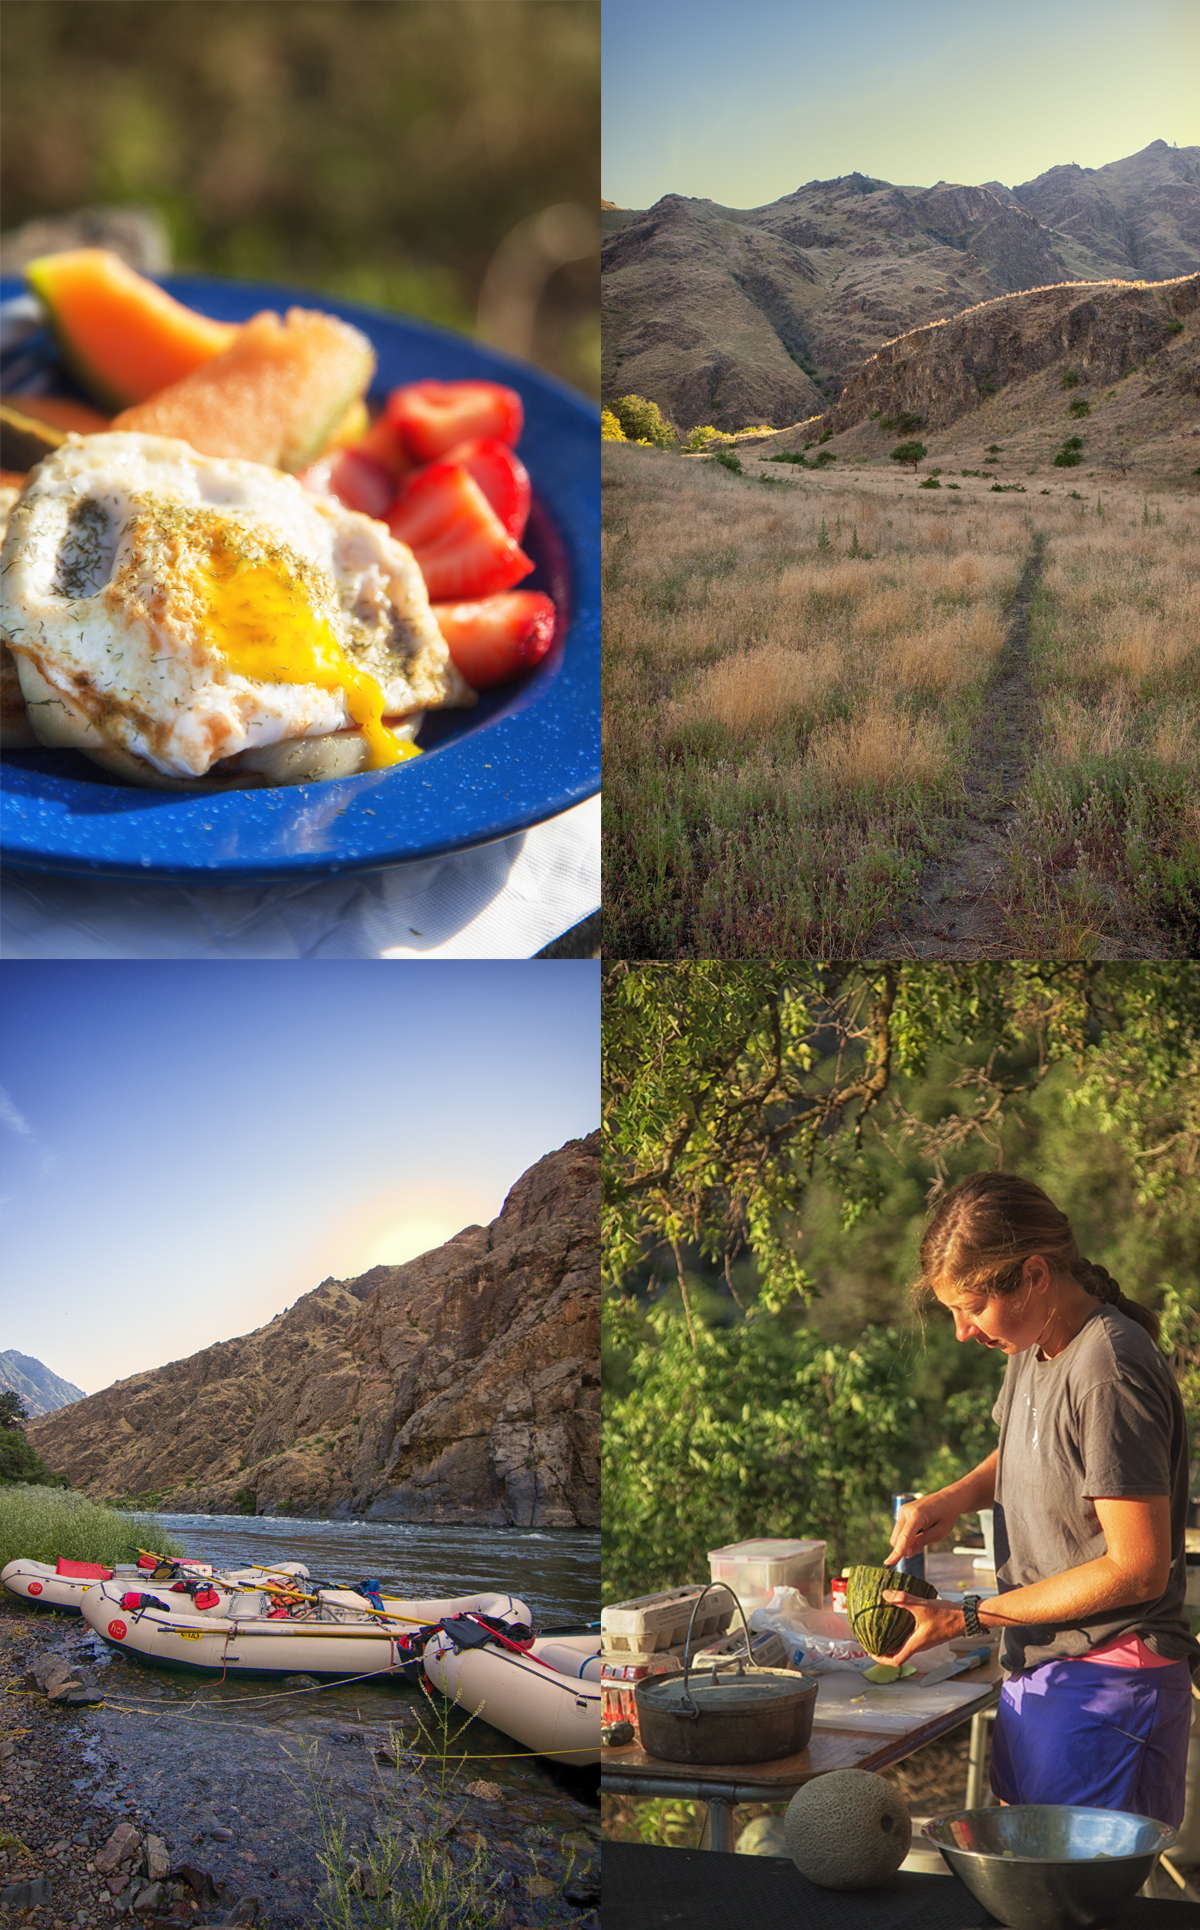 Riverside breakfast in Hells Canyon with Hells Canyon Raft via J5MM.com